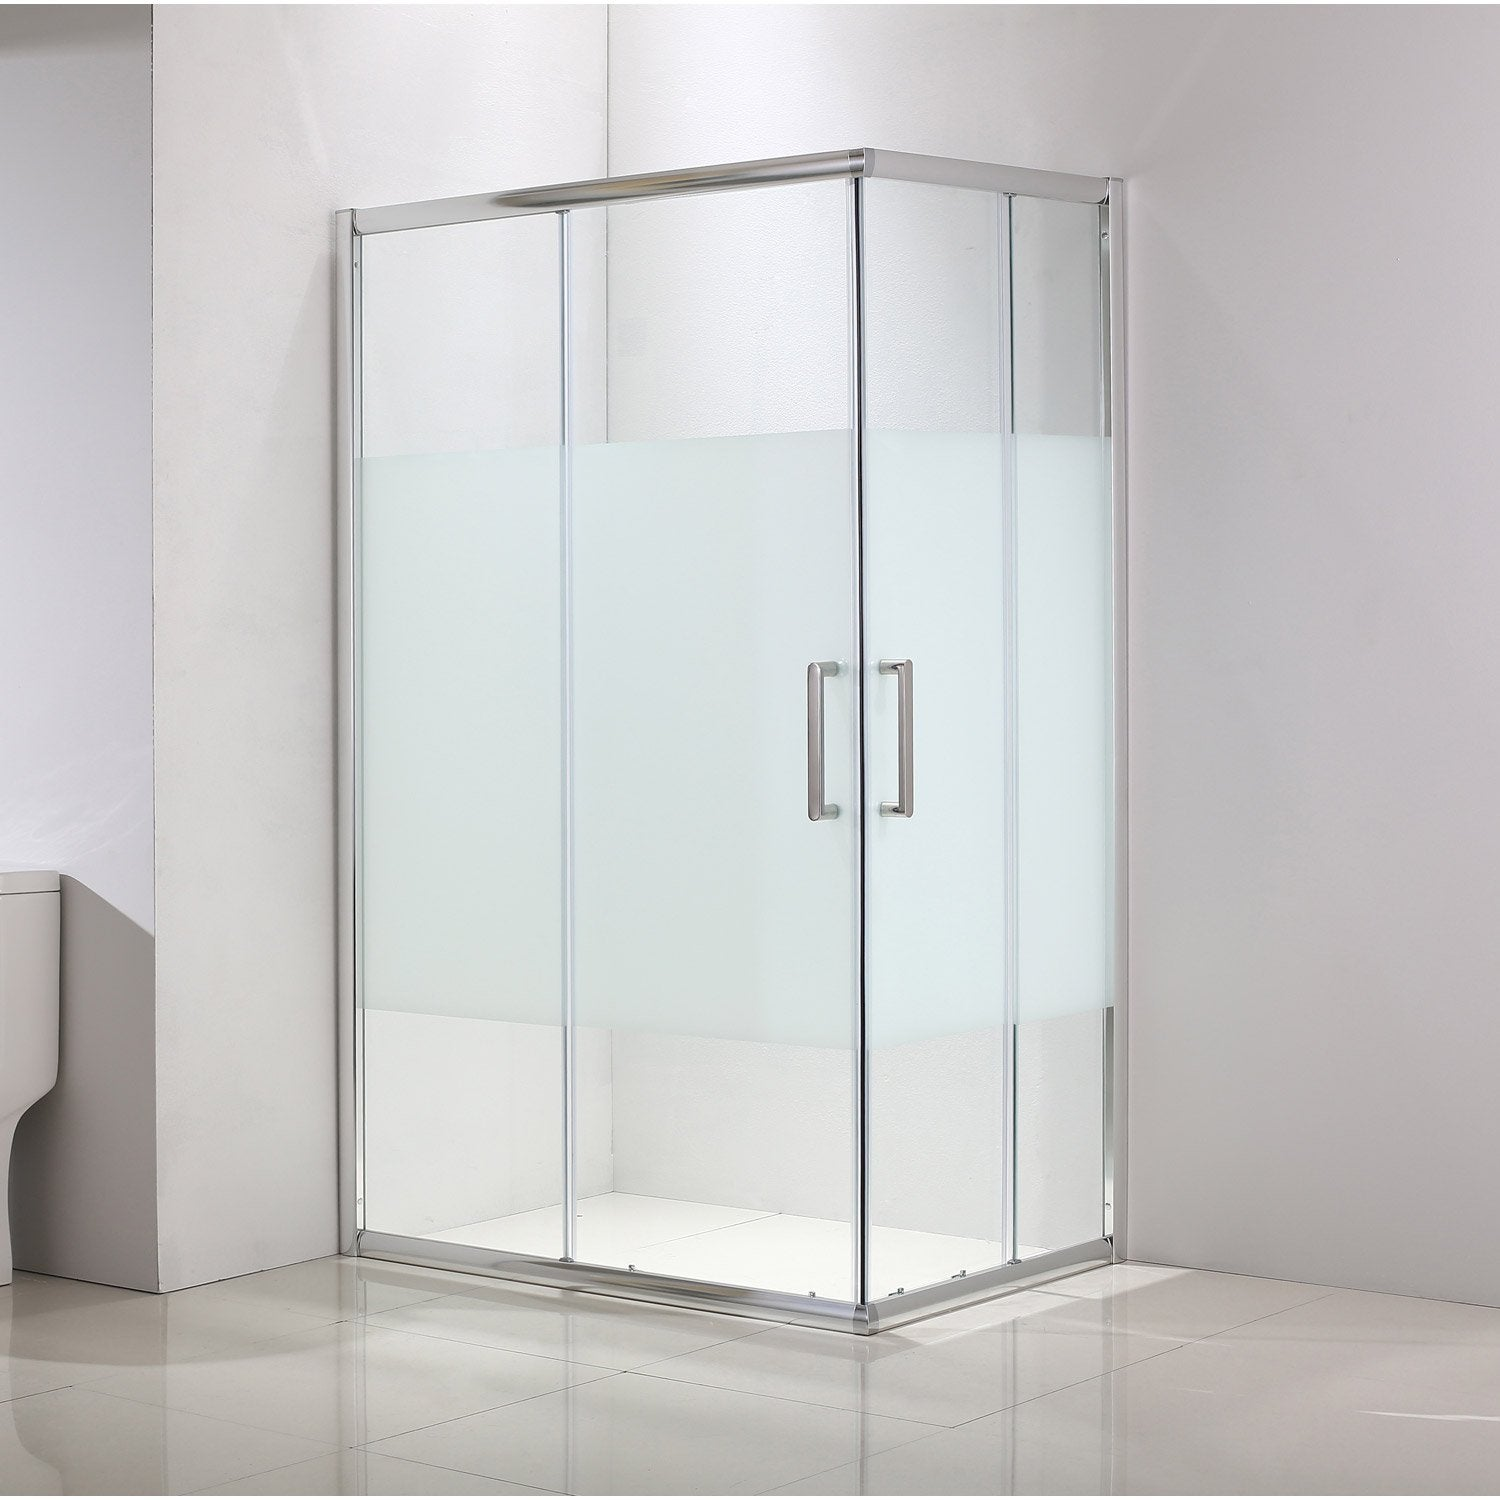 Porte de douche coulissante angle rectangle 120 x 80 cm for Porte coulissante 120 cm